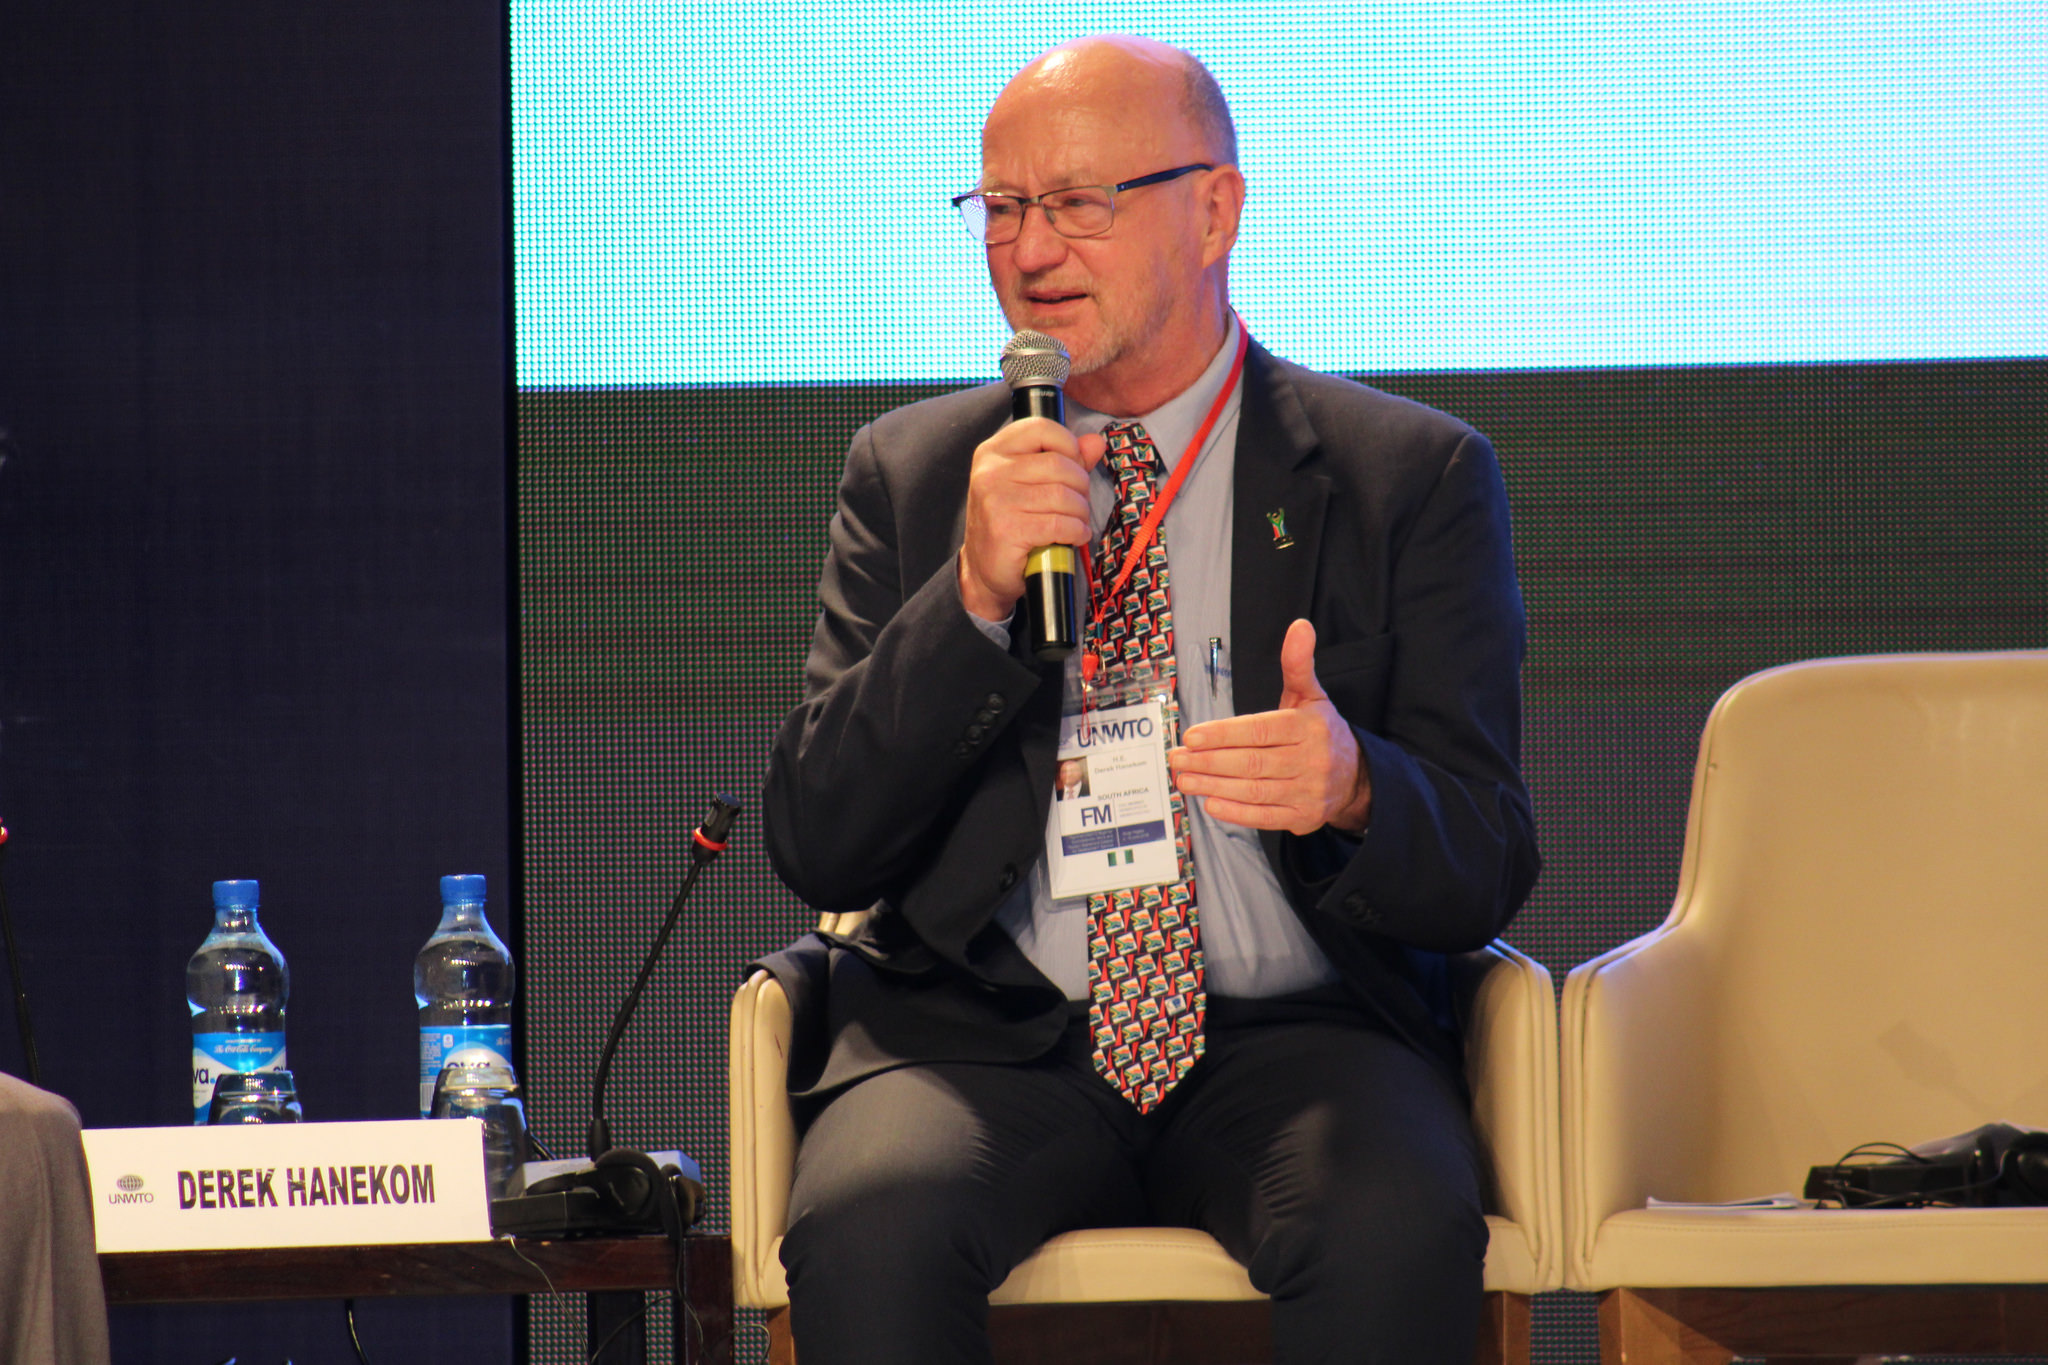 #ATLF2018: Intra-Africa Travel  Dialogue on the Agenda